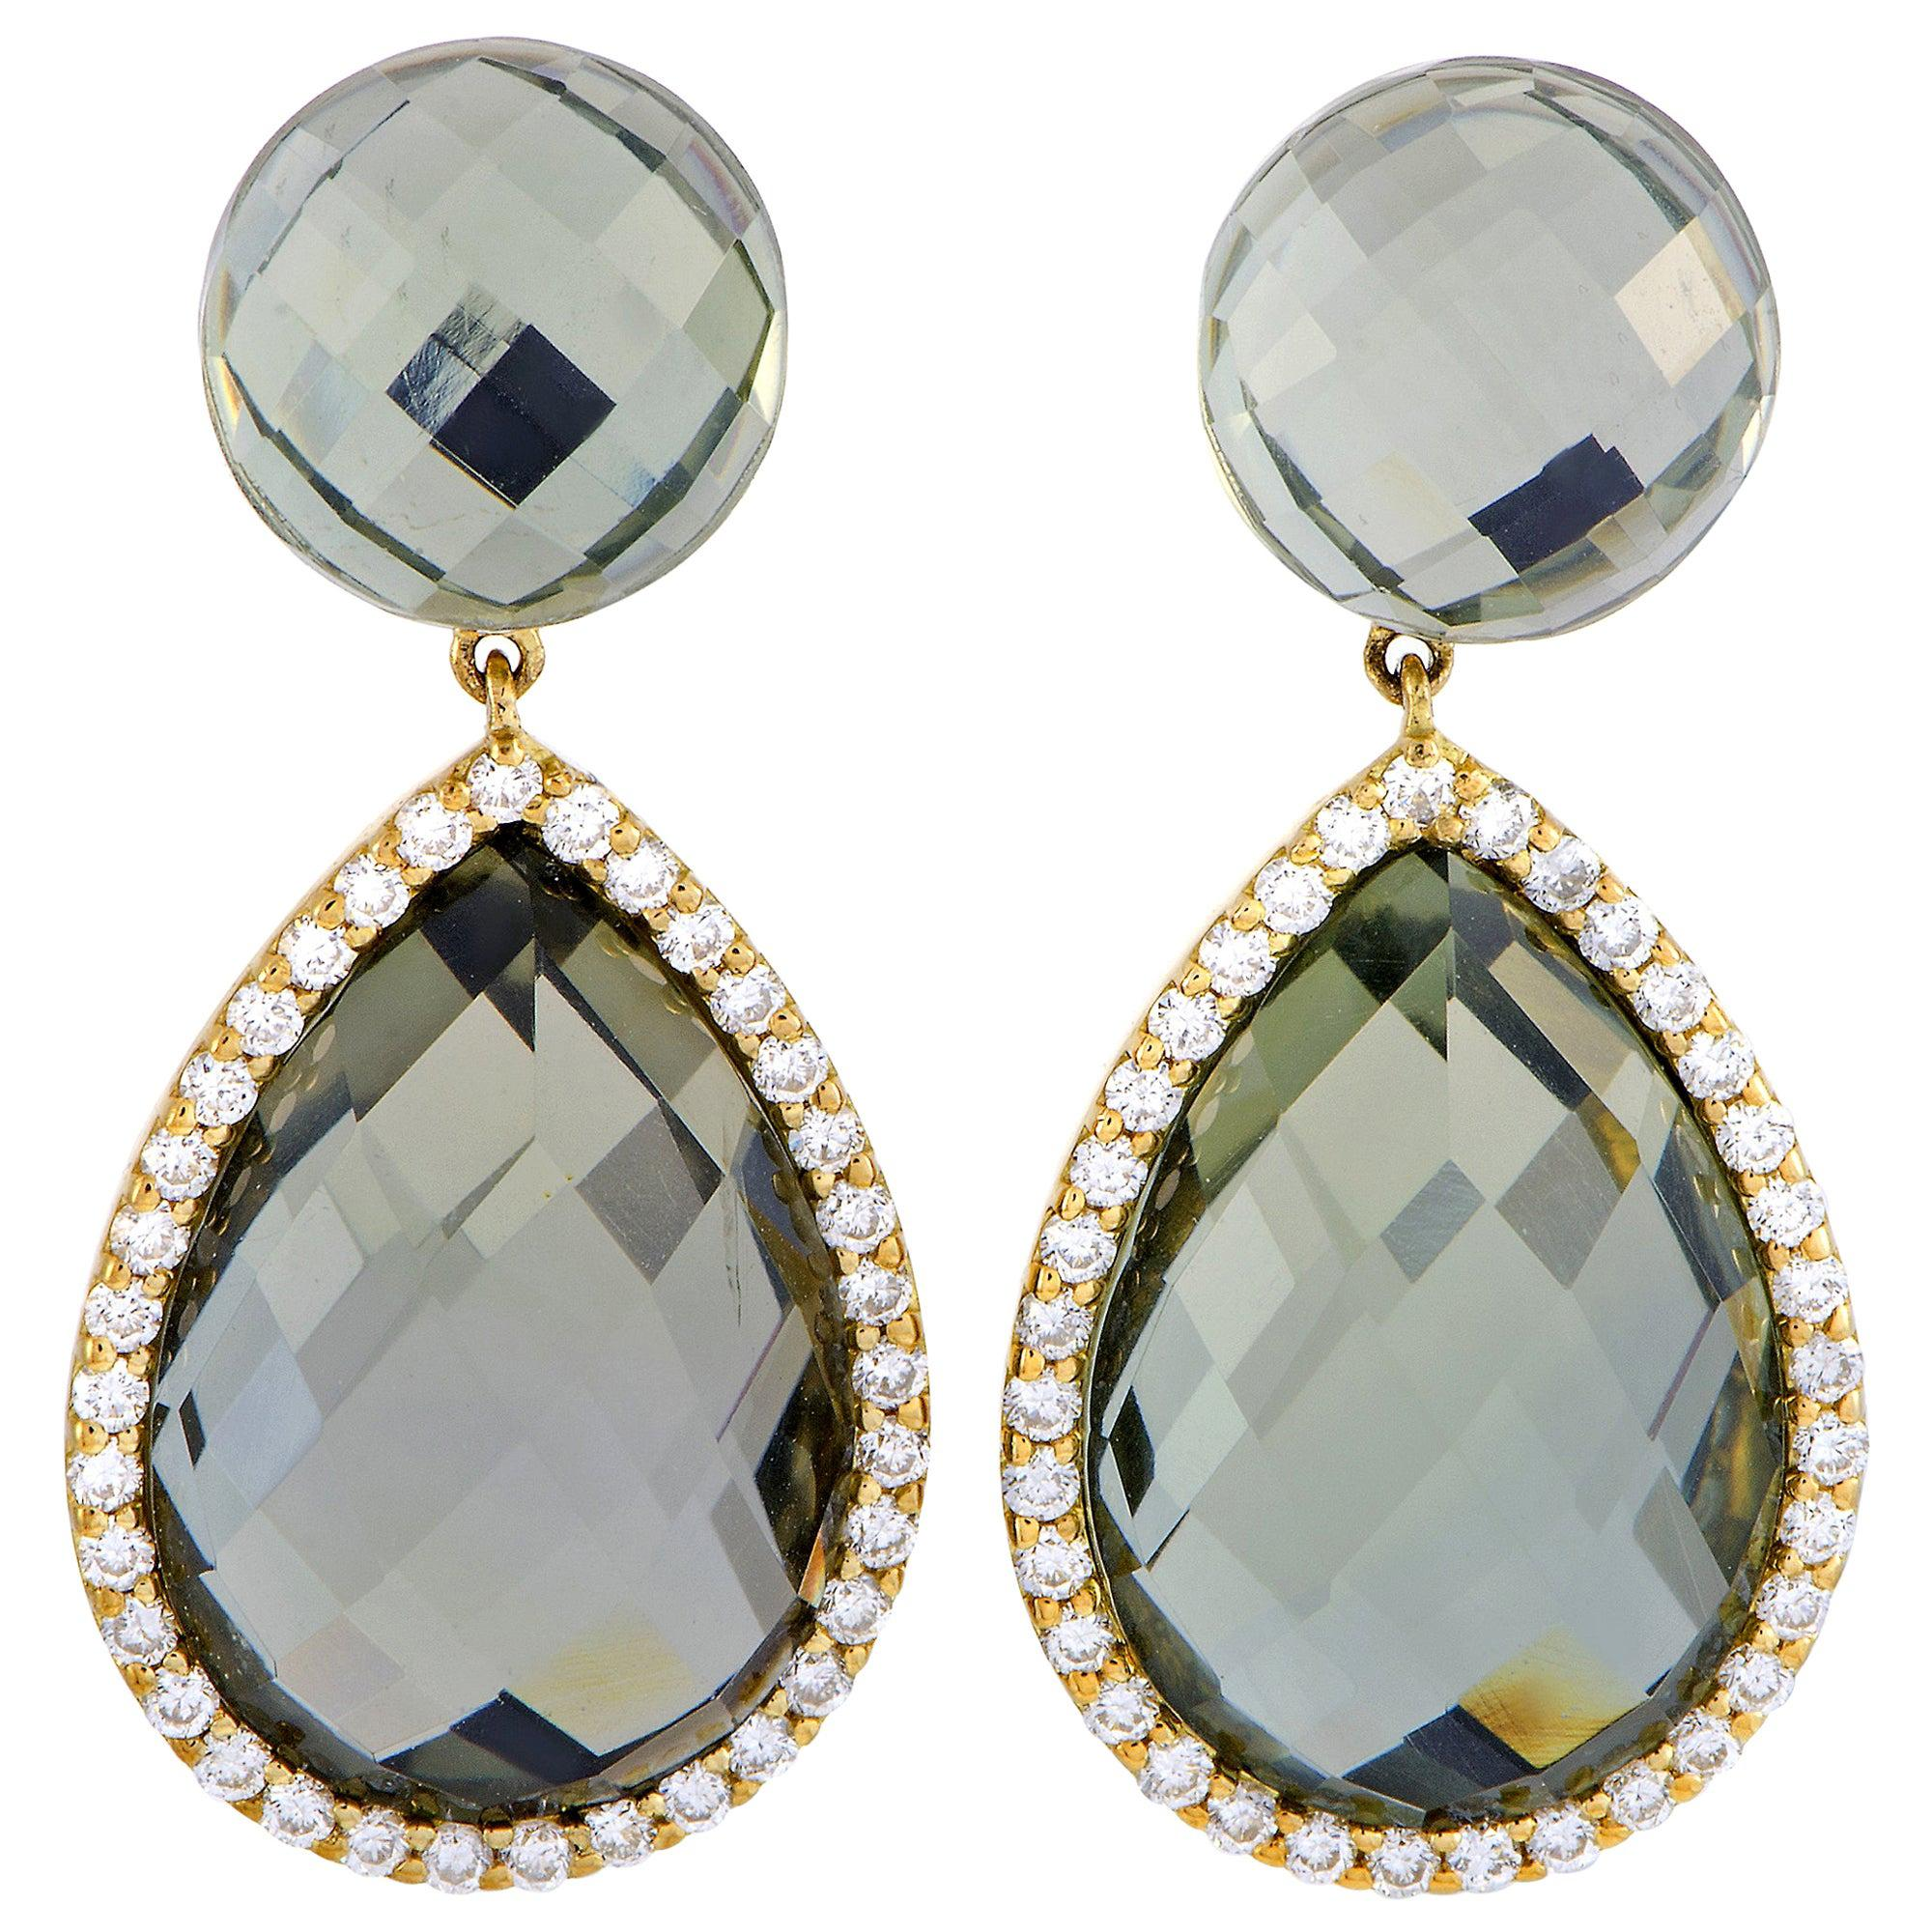 Roberto Coin Cocktail 18k Yellow and White Gold Diamond and Prasiolite Earrings